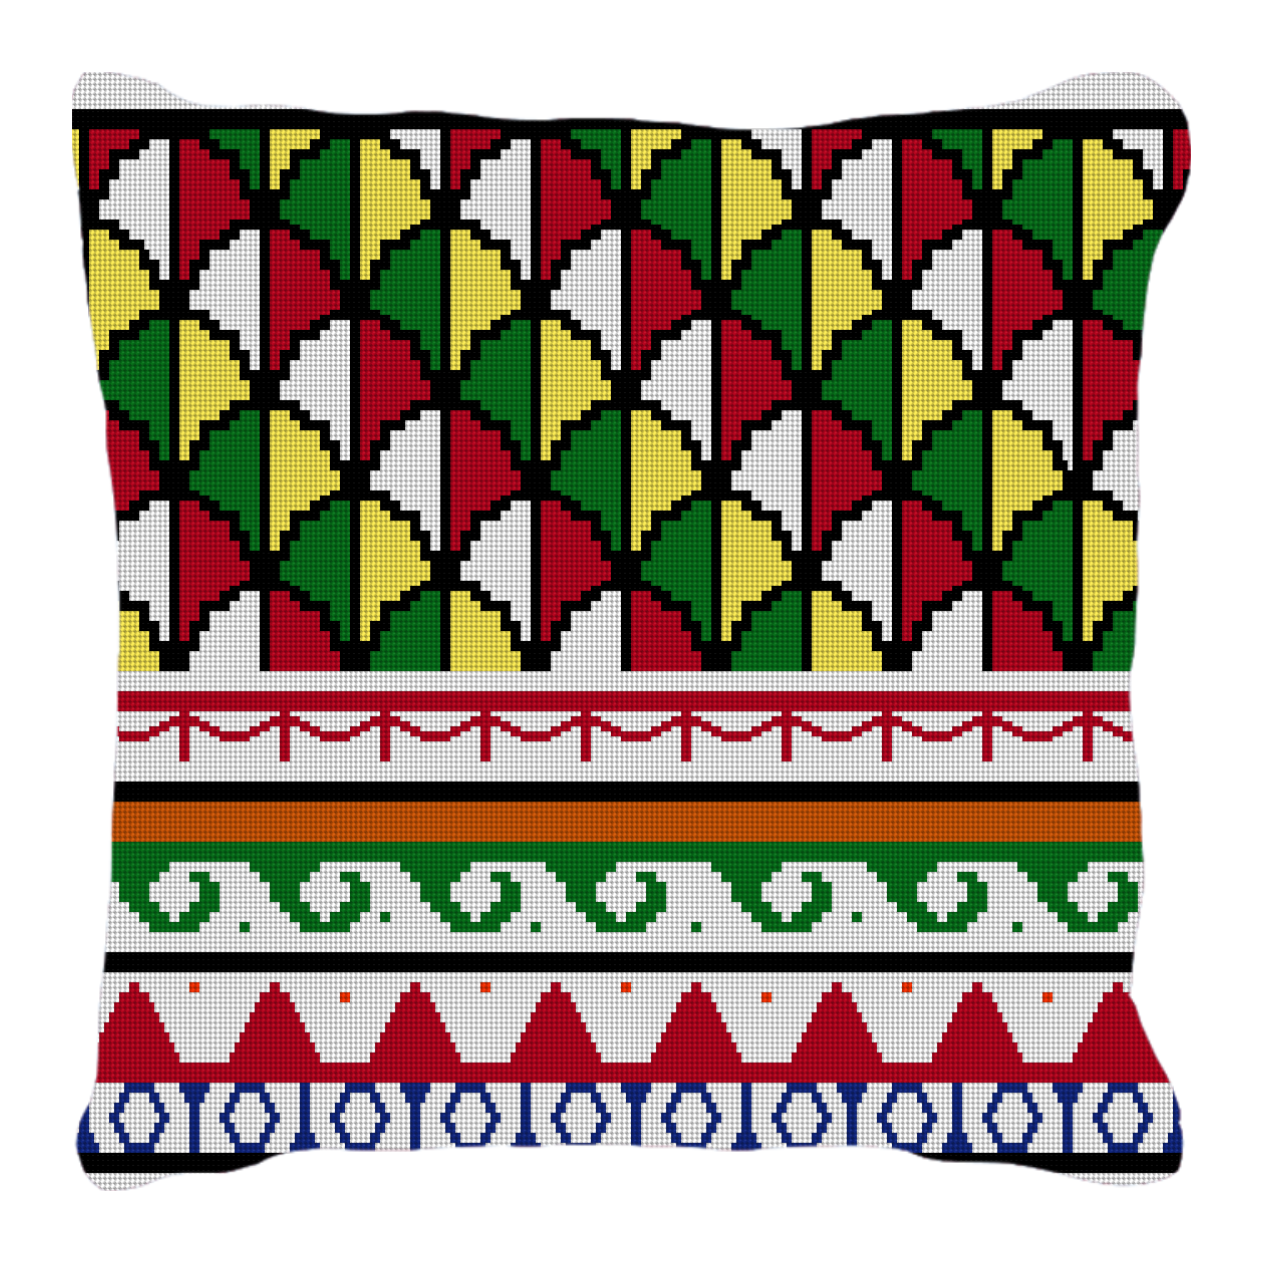 Polychrome Mosaic Needlepoint Pillow